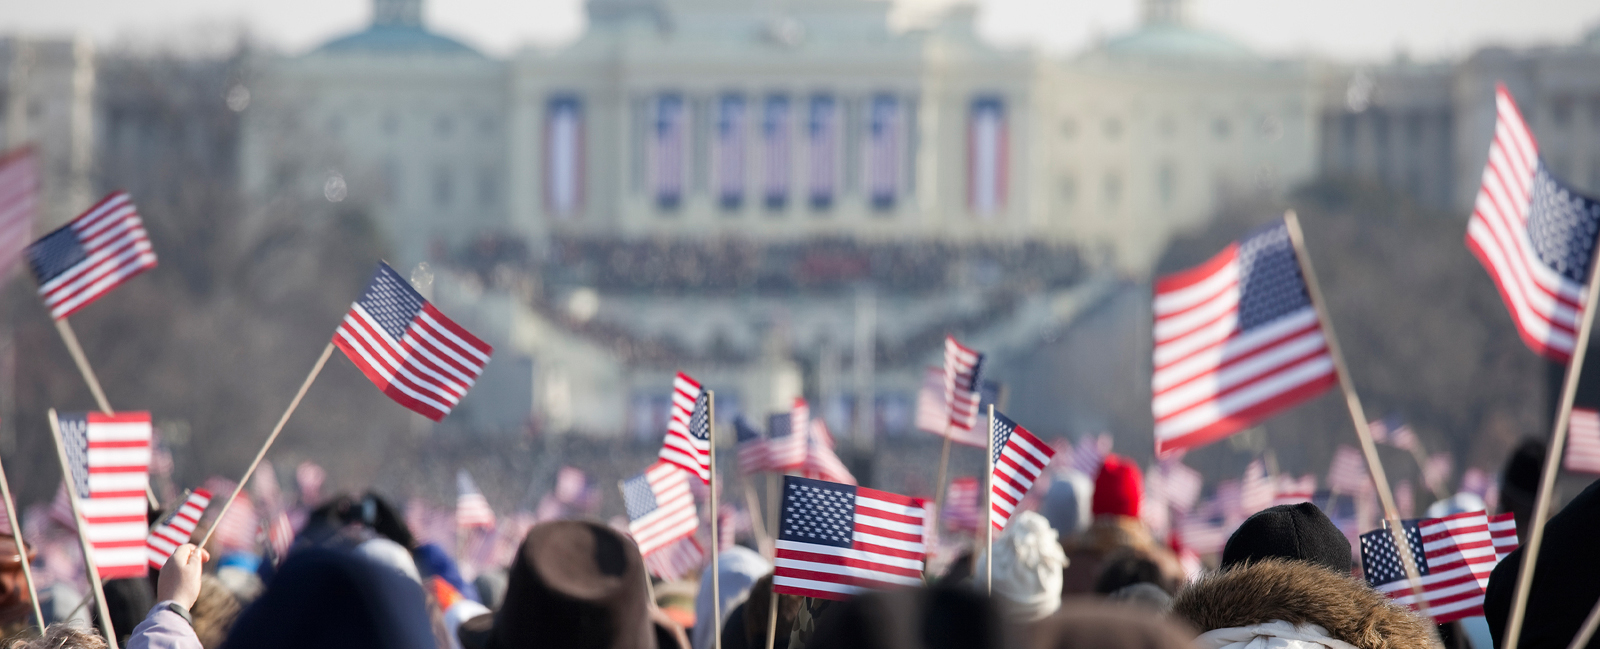 59th Inaugural Ceremonies